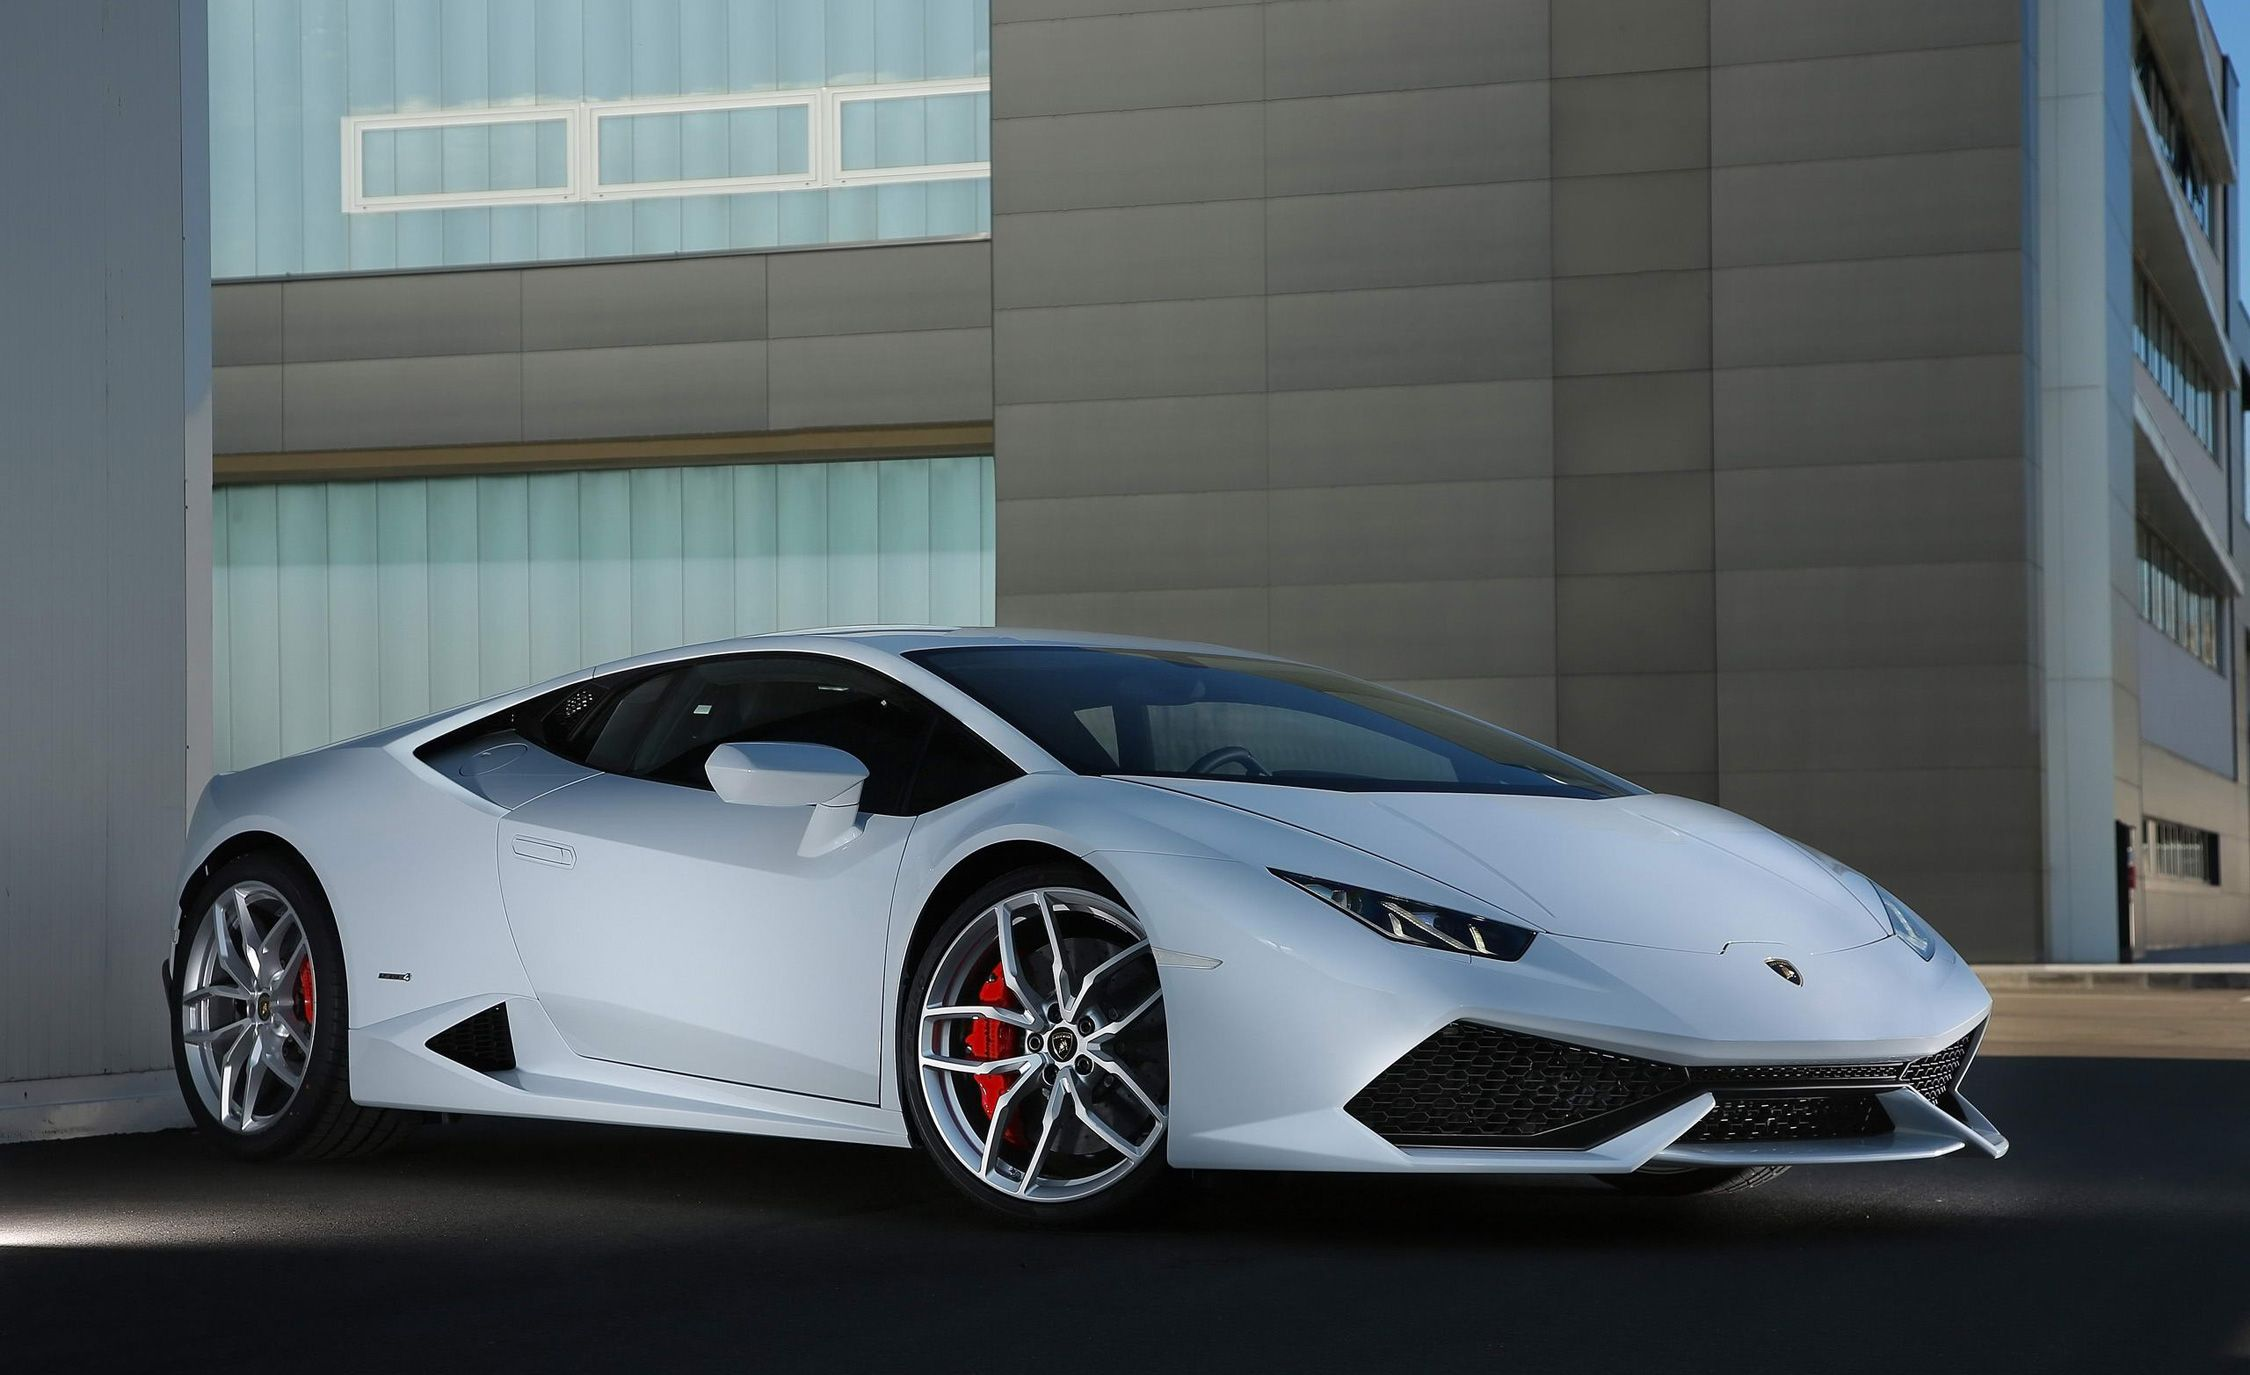 These Are the 10 Most Beautiful Cars Available Today | Flipbook ...